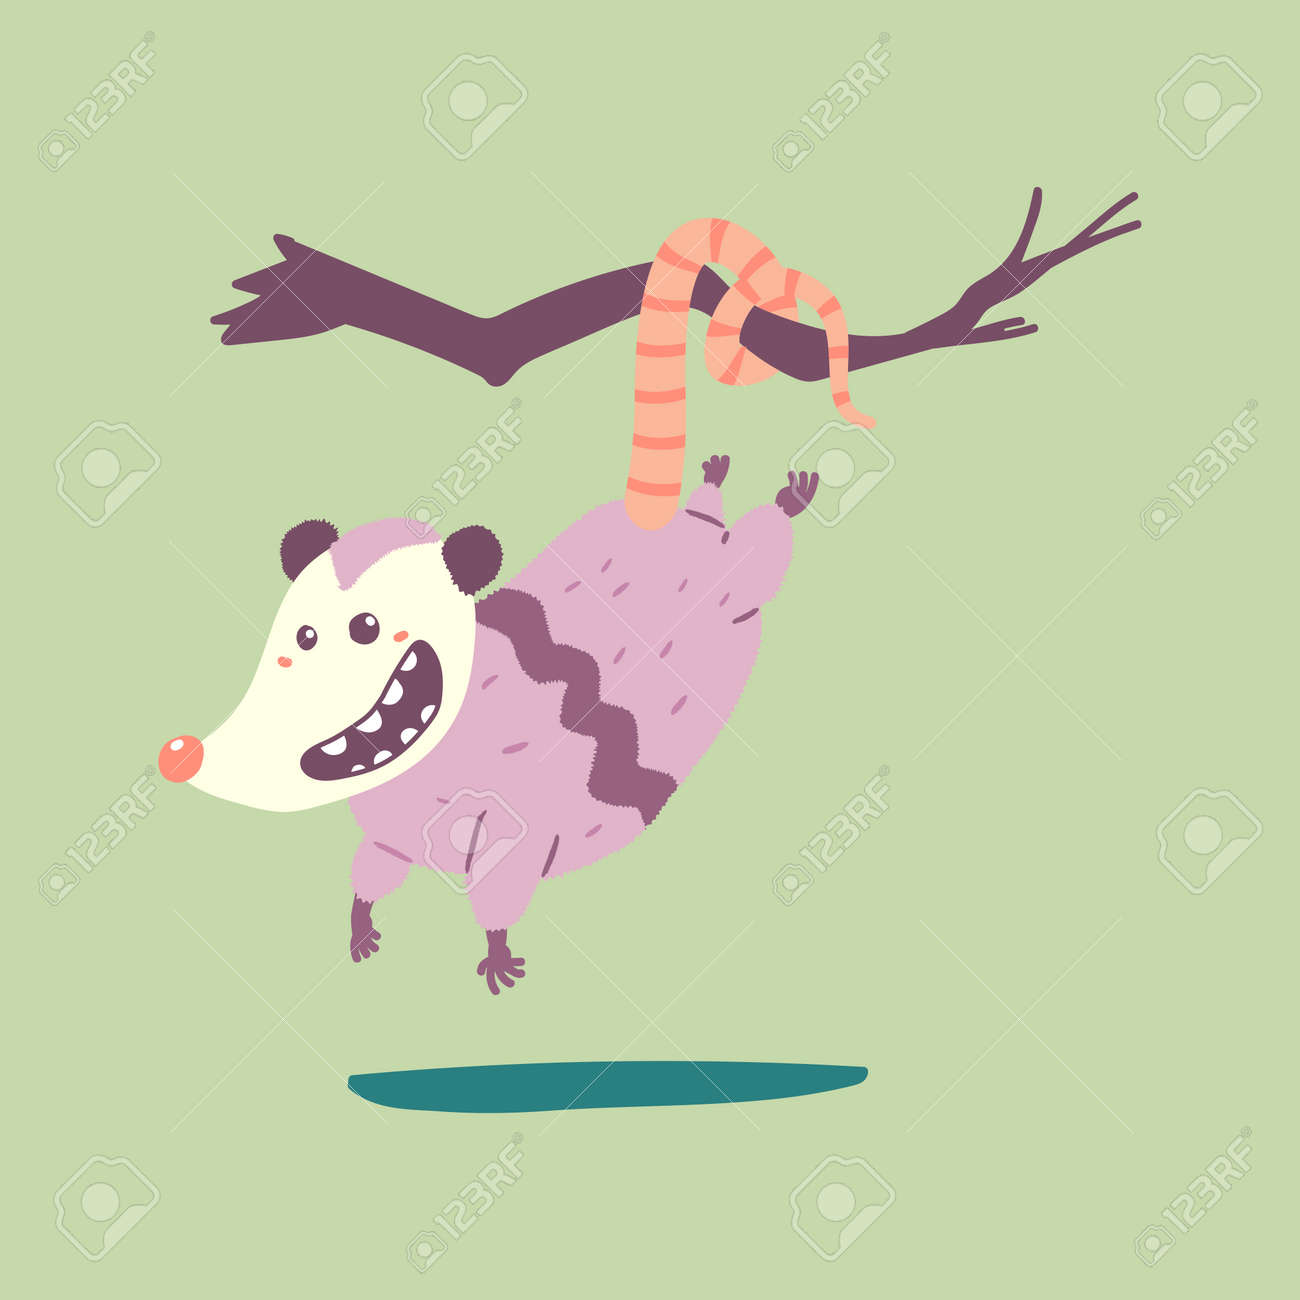 Cute possum hanging on a branch tree vector cartoon character isolated on background. - 170637588